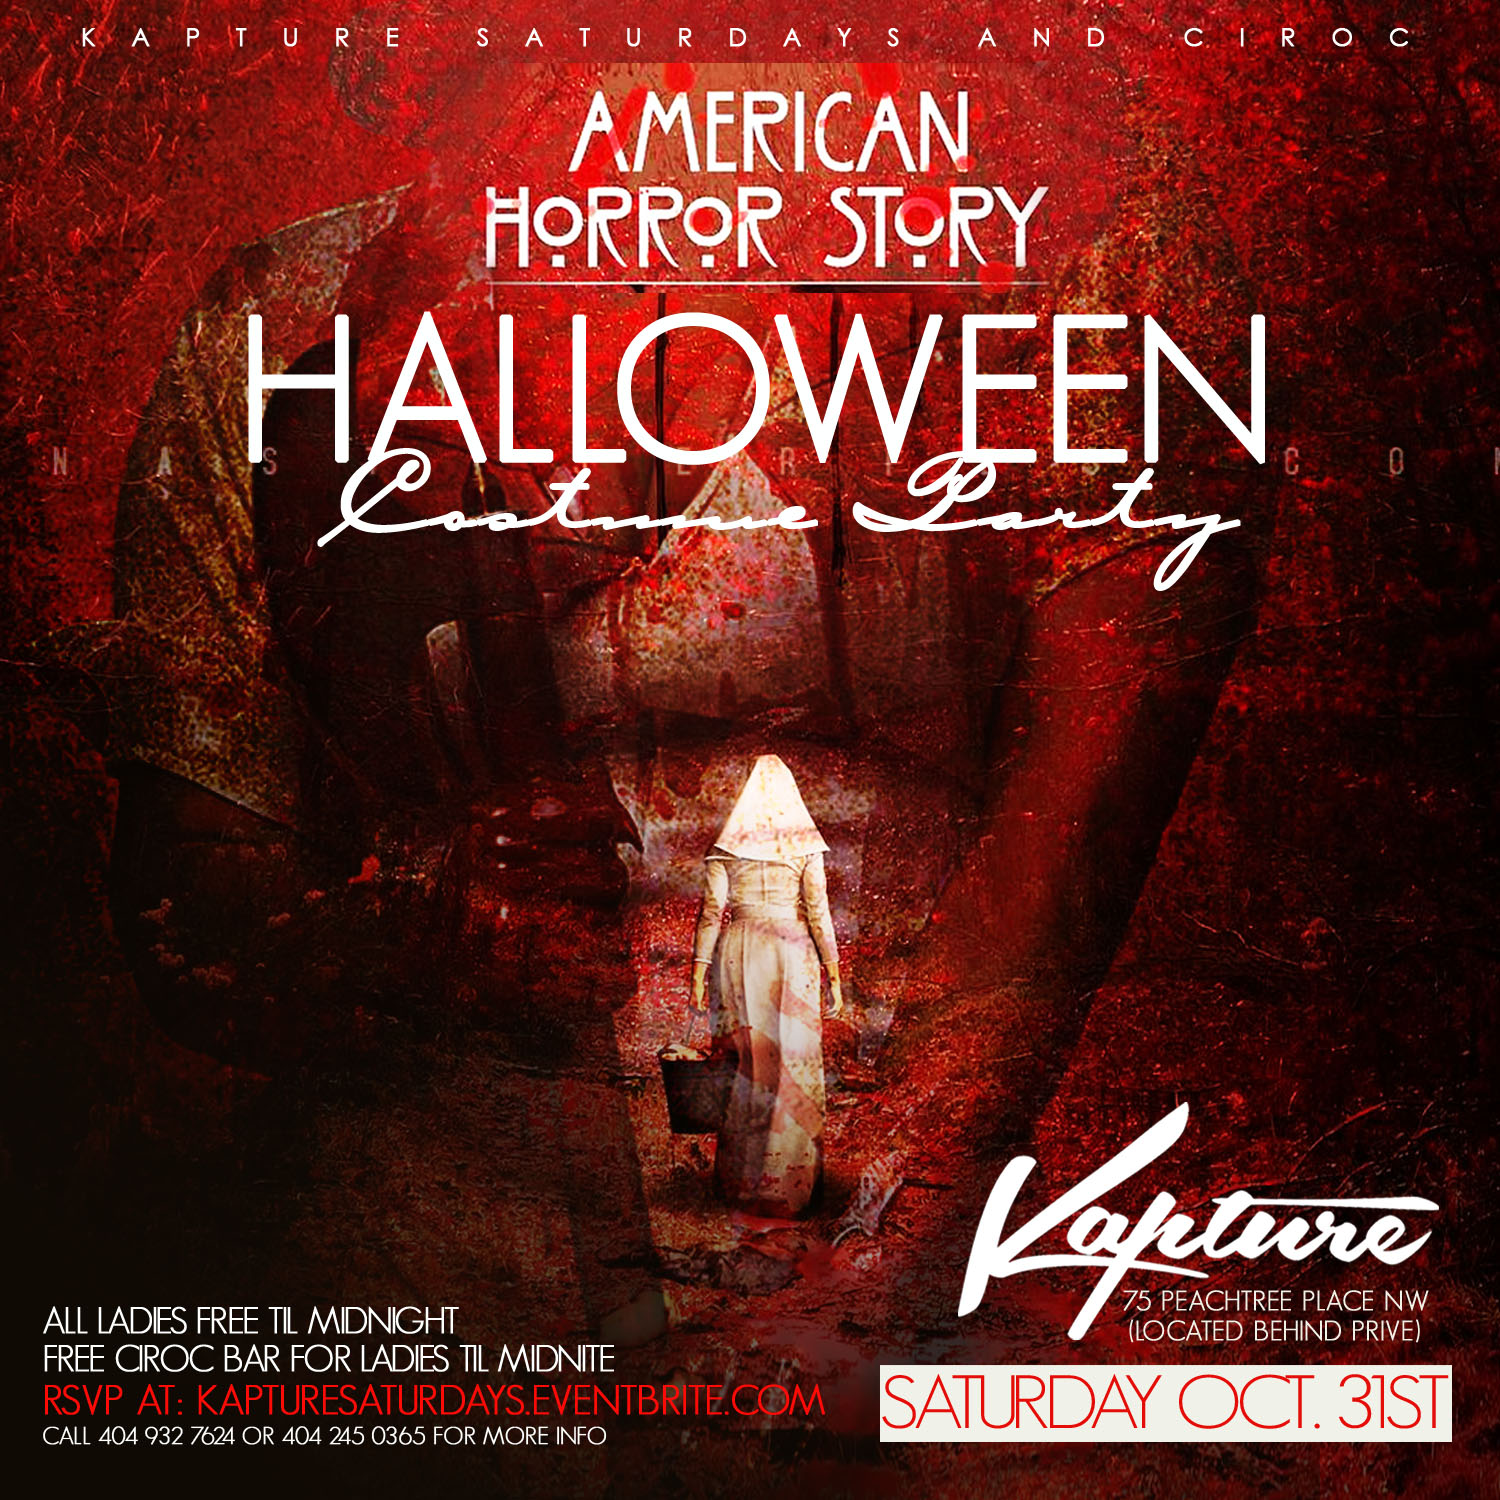 American Horror Story Halloween Party at Kapture this Saturday ...